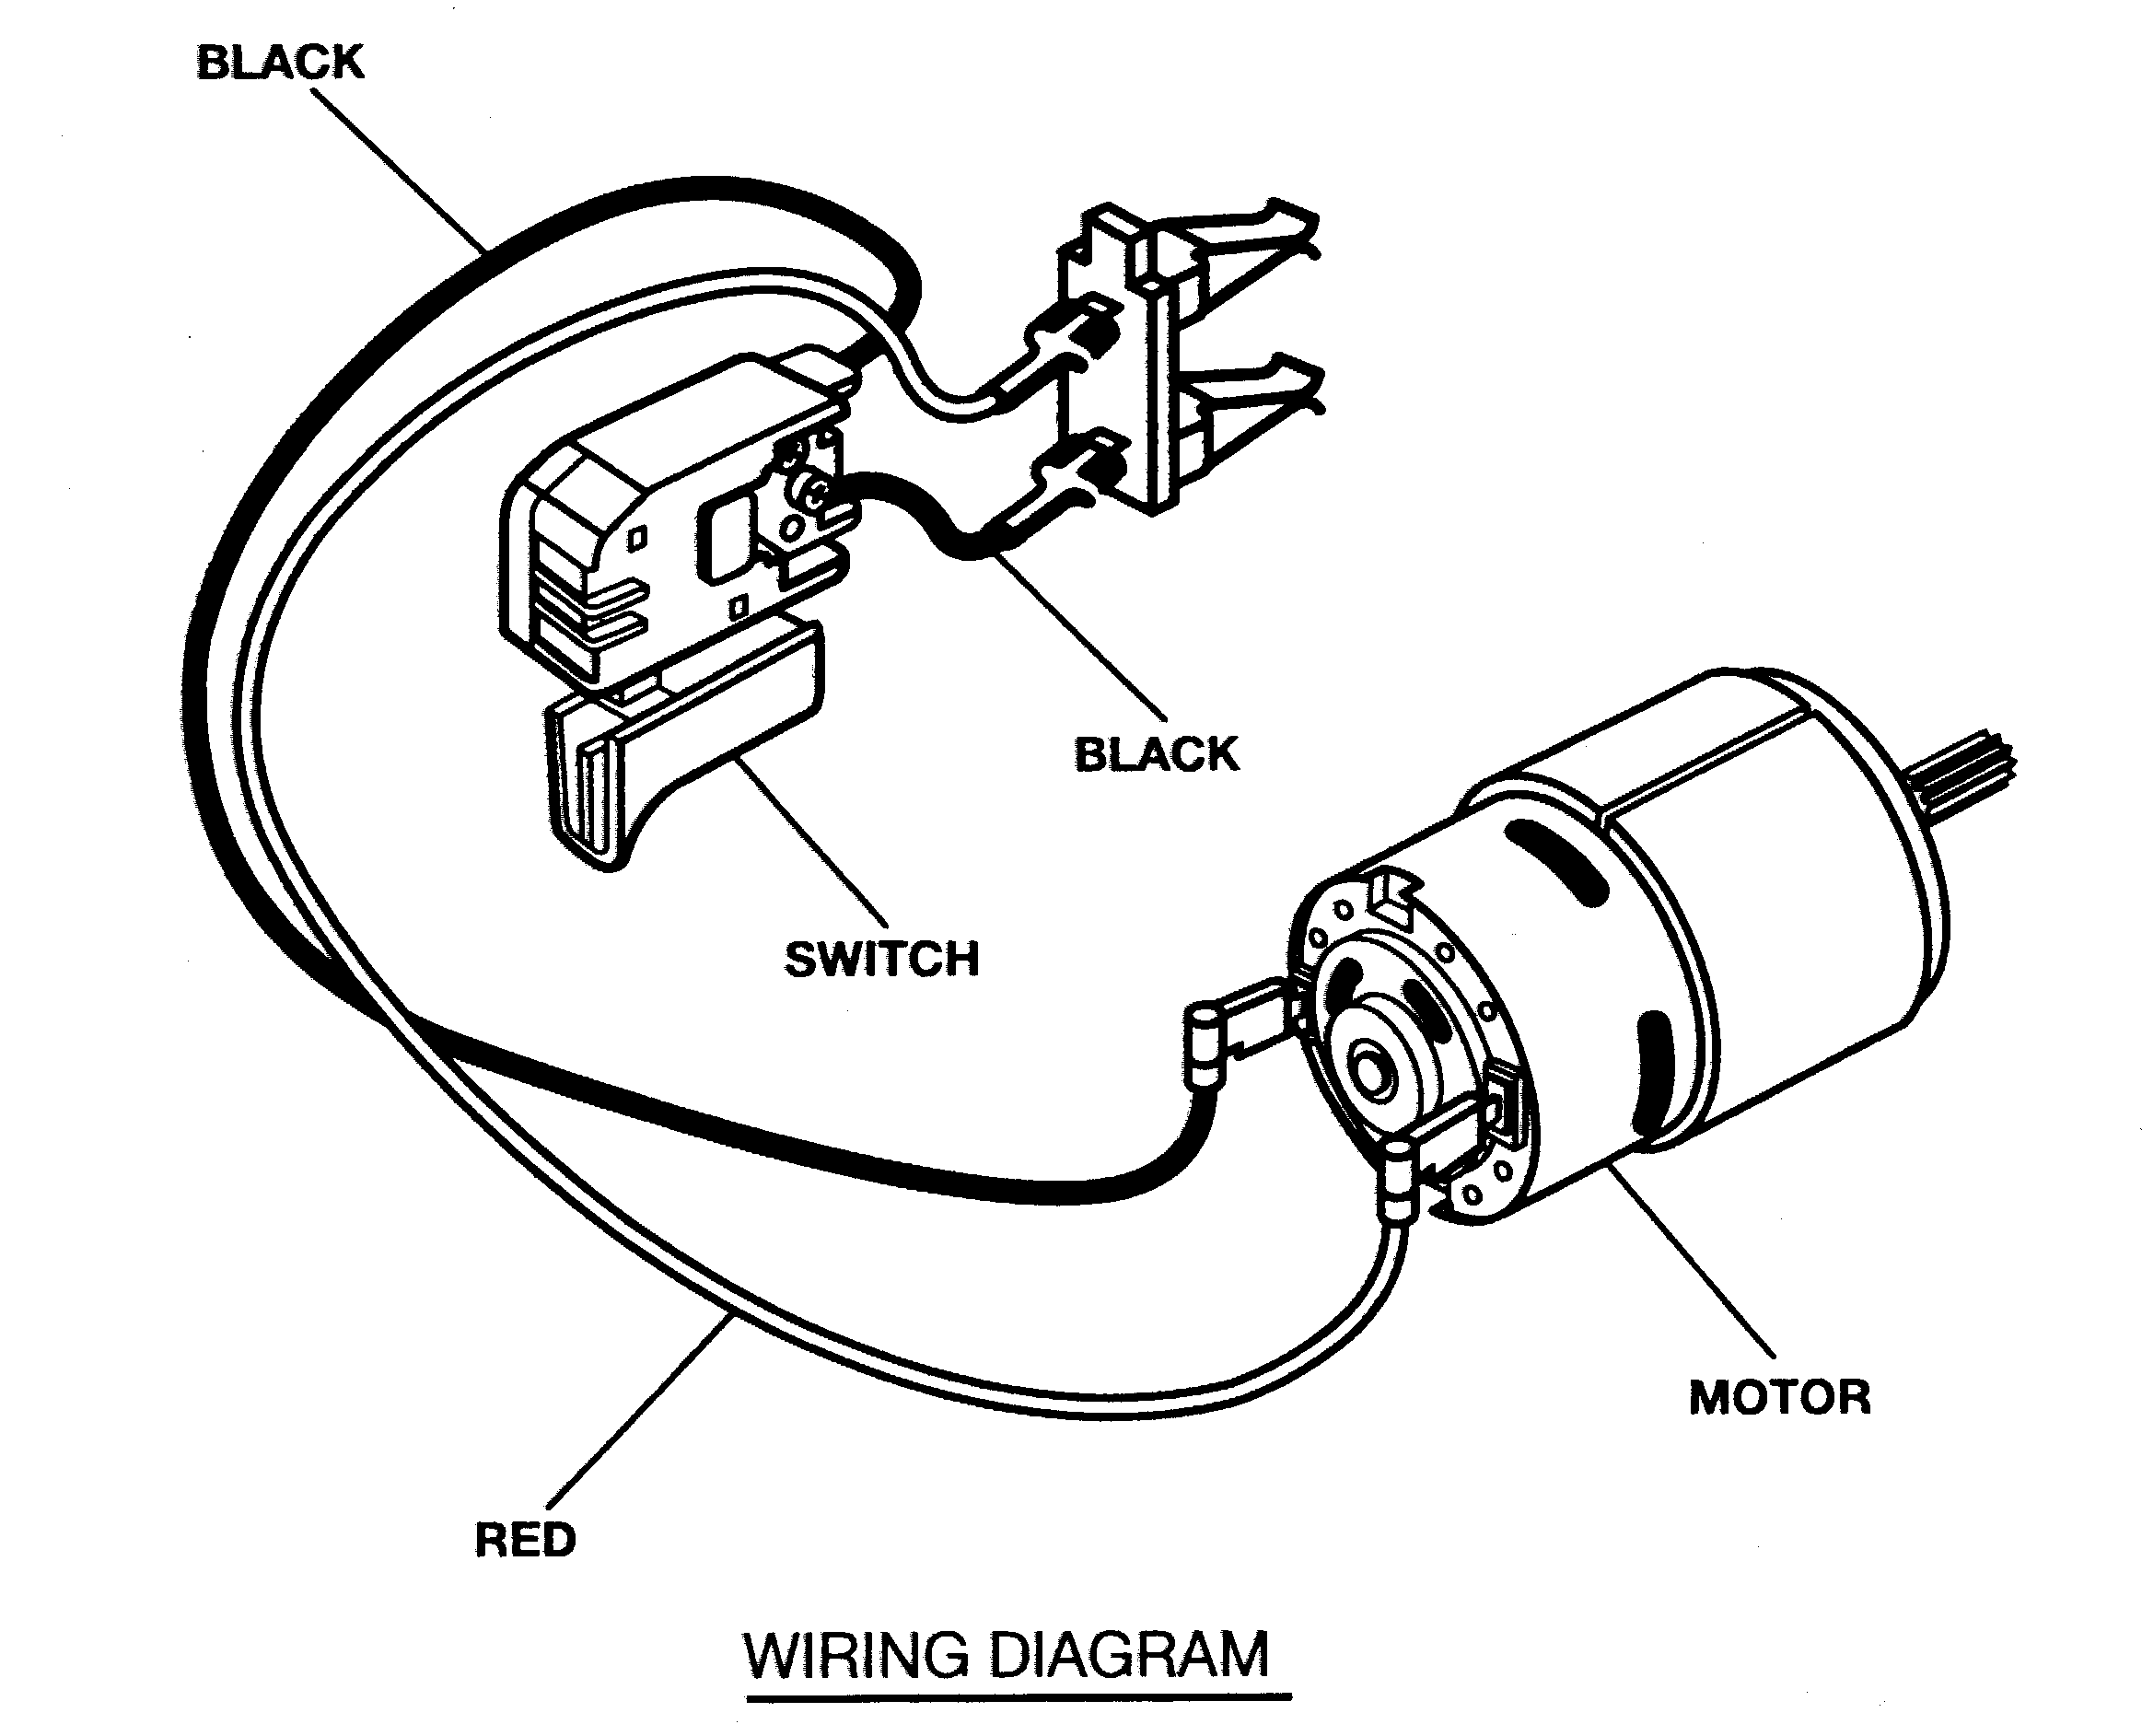 [DIAGRAM] Table Saw Motor Wire Diagram FULL Version HD